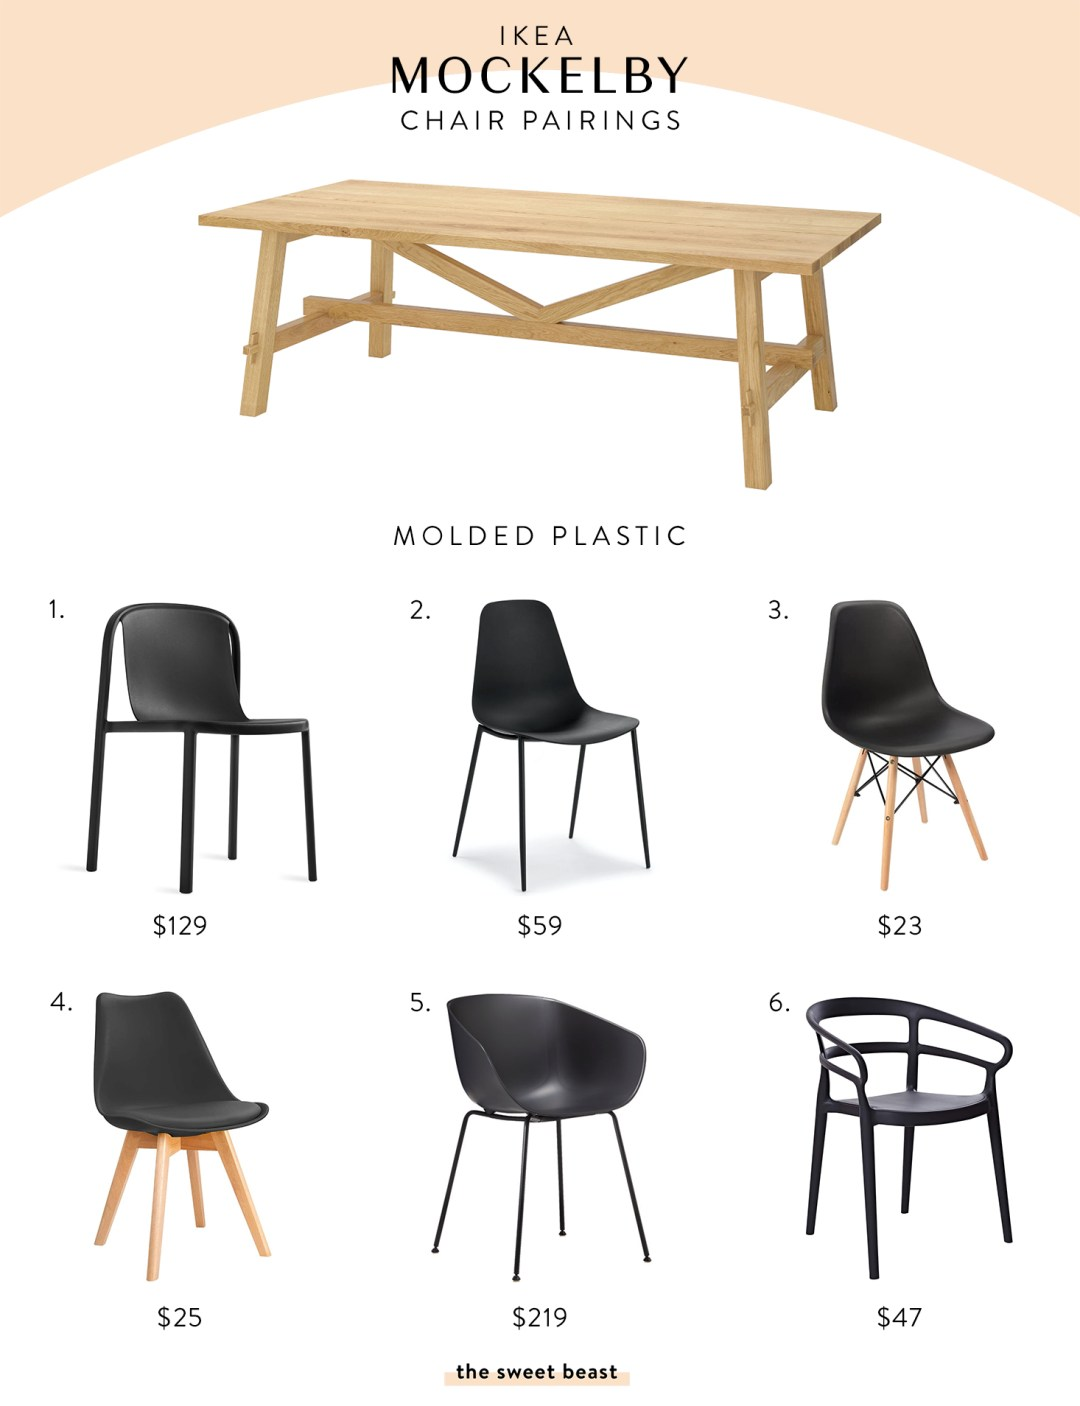 Ikea mockelby paired with 6 molded plastic chair options